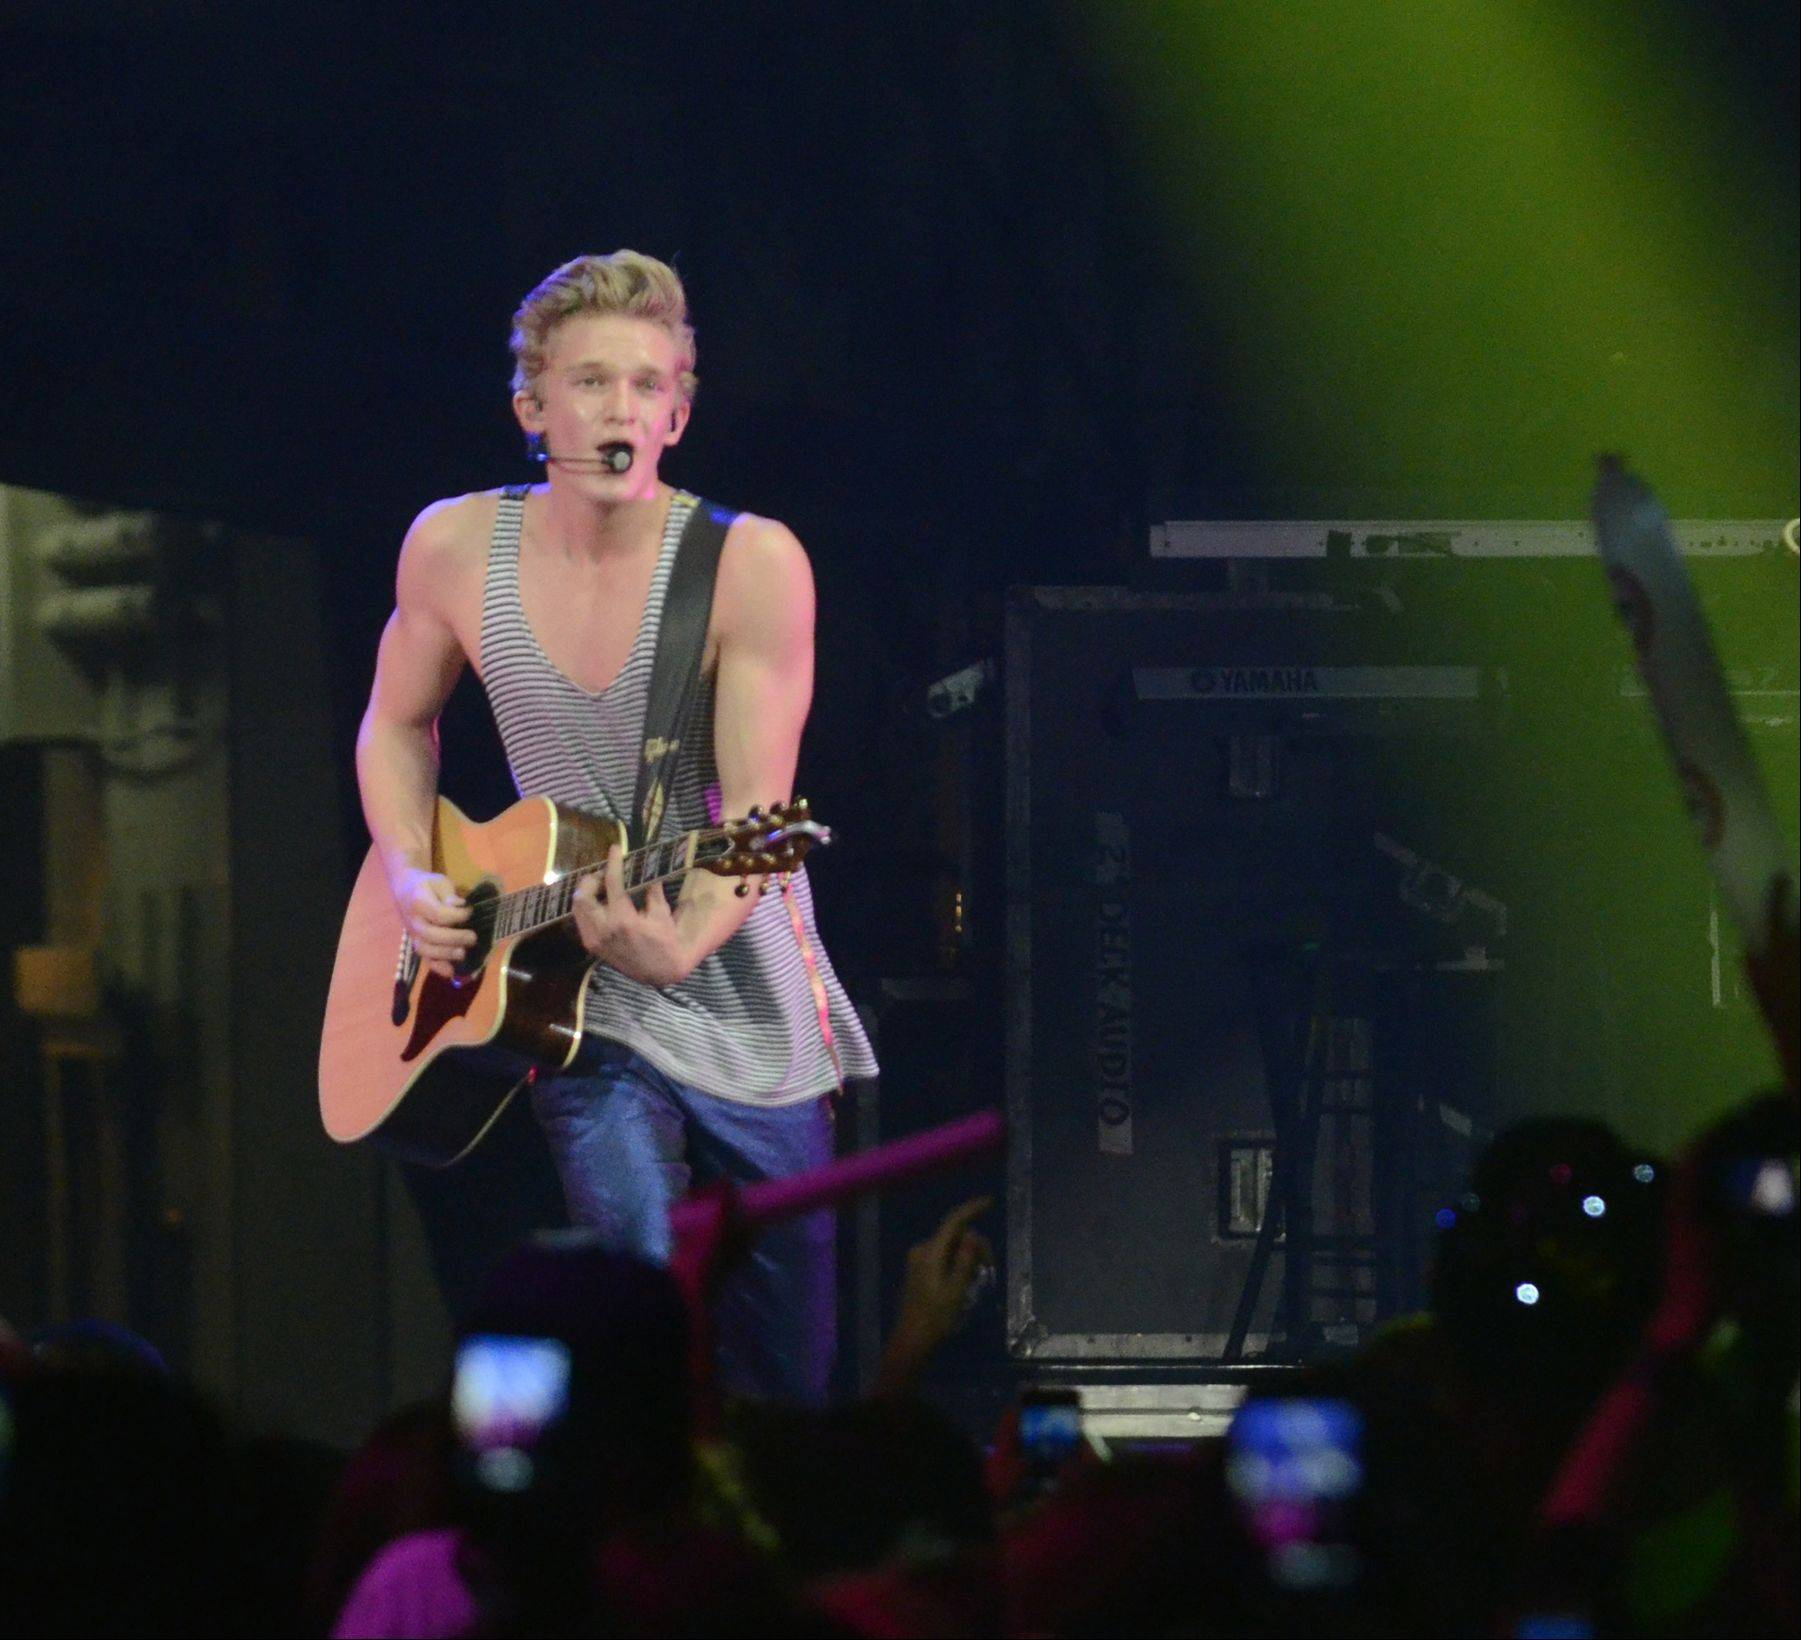 Cody Simpson performs during the Jingle Bash concert at the Allstate Arena in Rosemont on Saturday, December 15th, 2012.